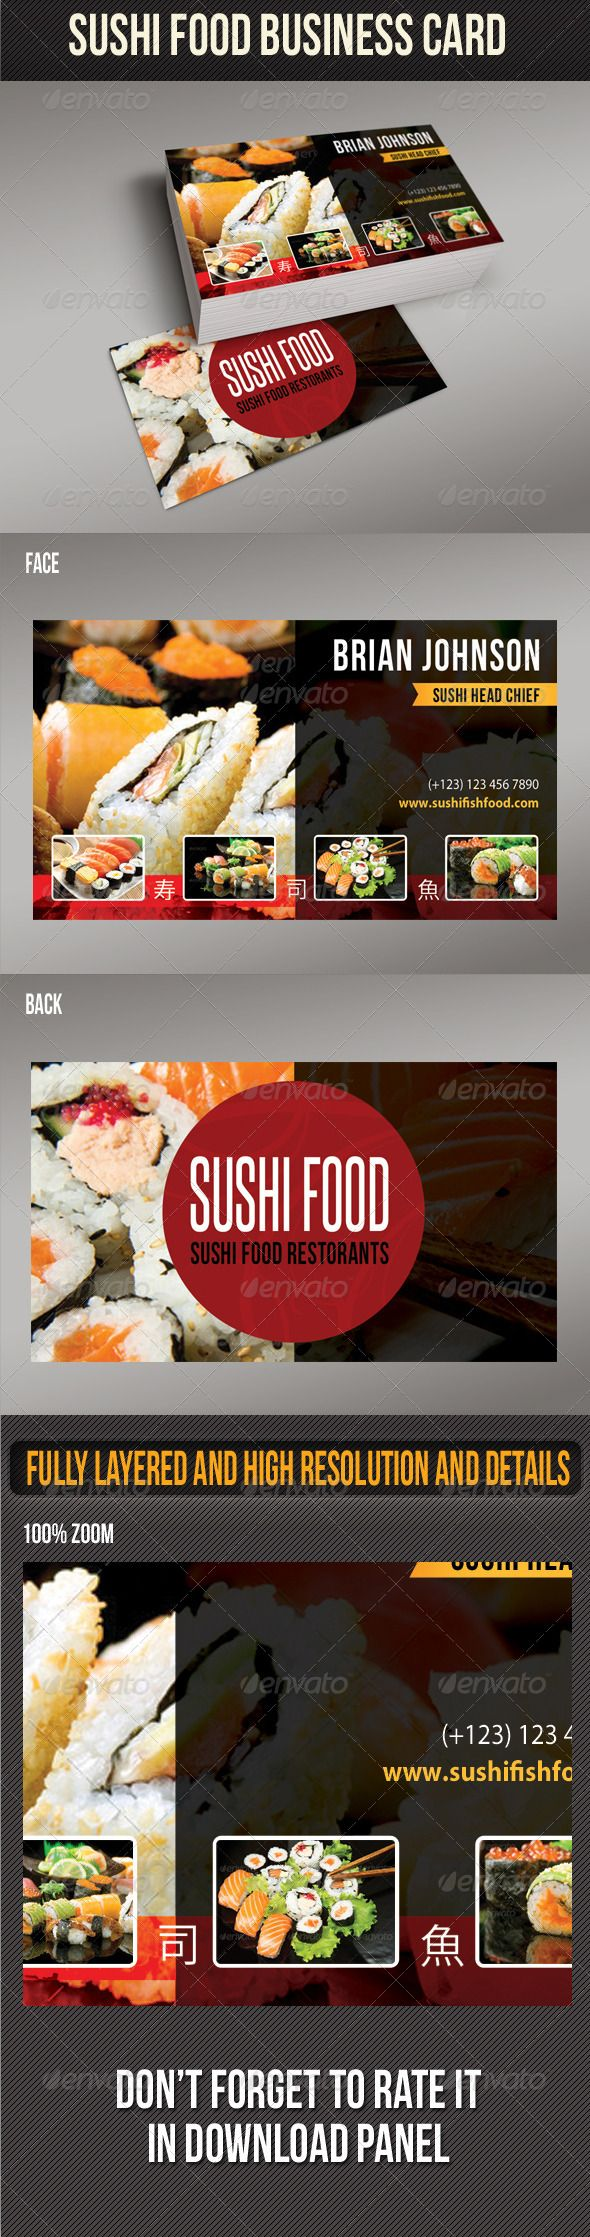 Sushi Food Business Card Template #card #vcard Download: http://graphicriver.net/item/sushi-food-business-card-02/8473769?ref=ksioks